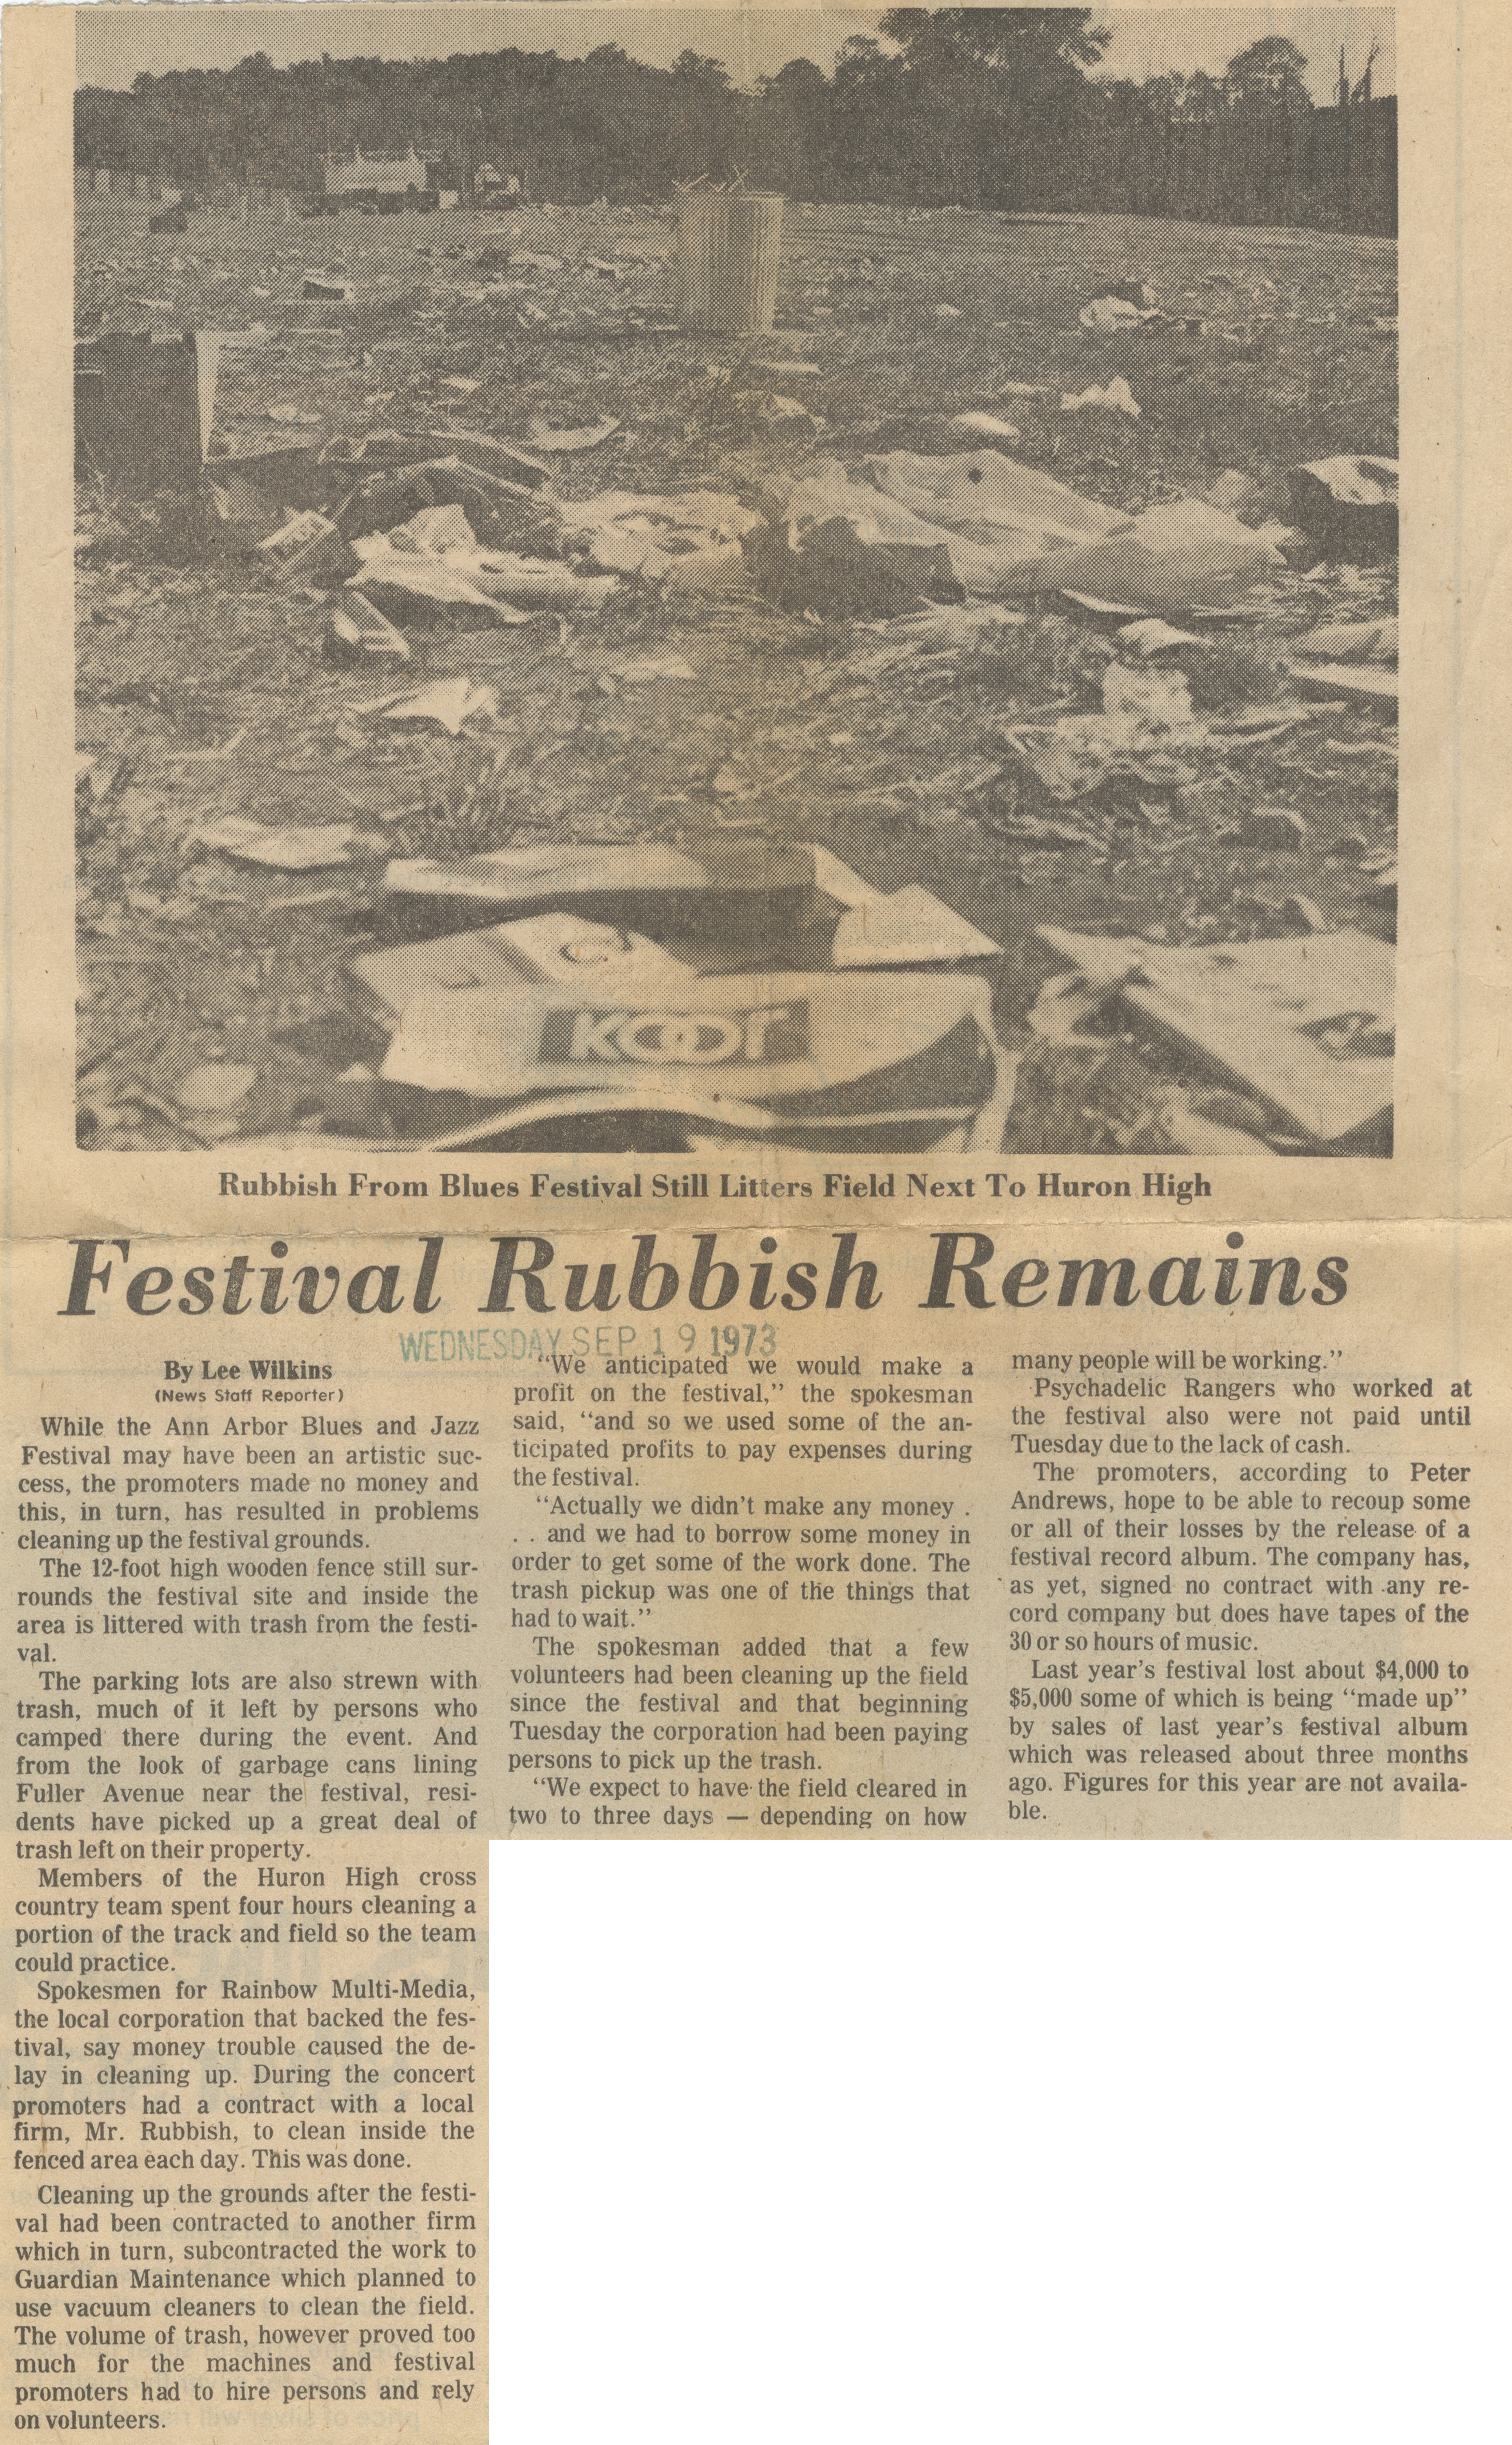 Festival Rubbish Remains image